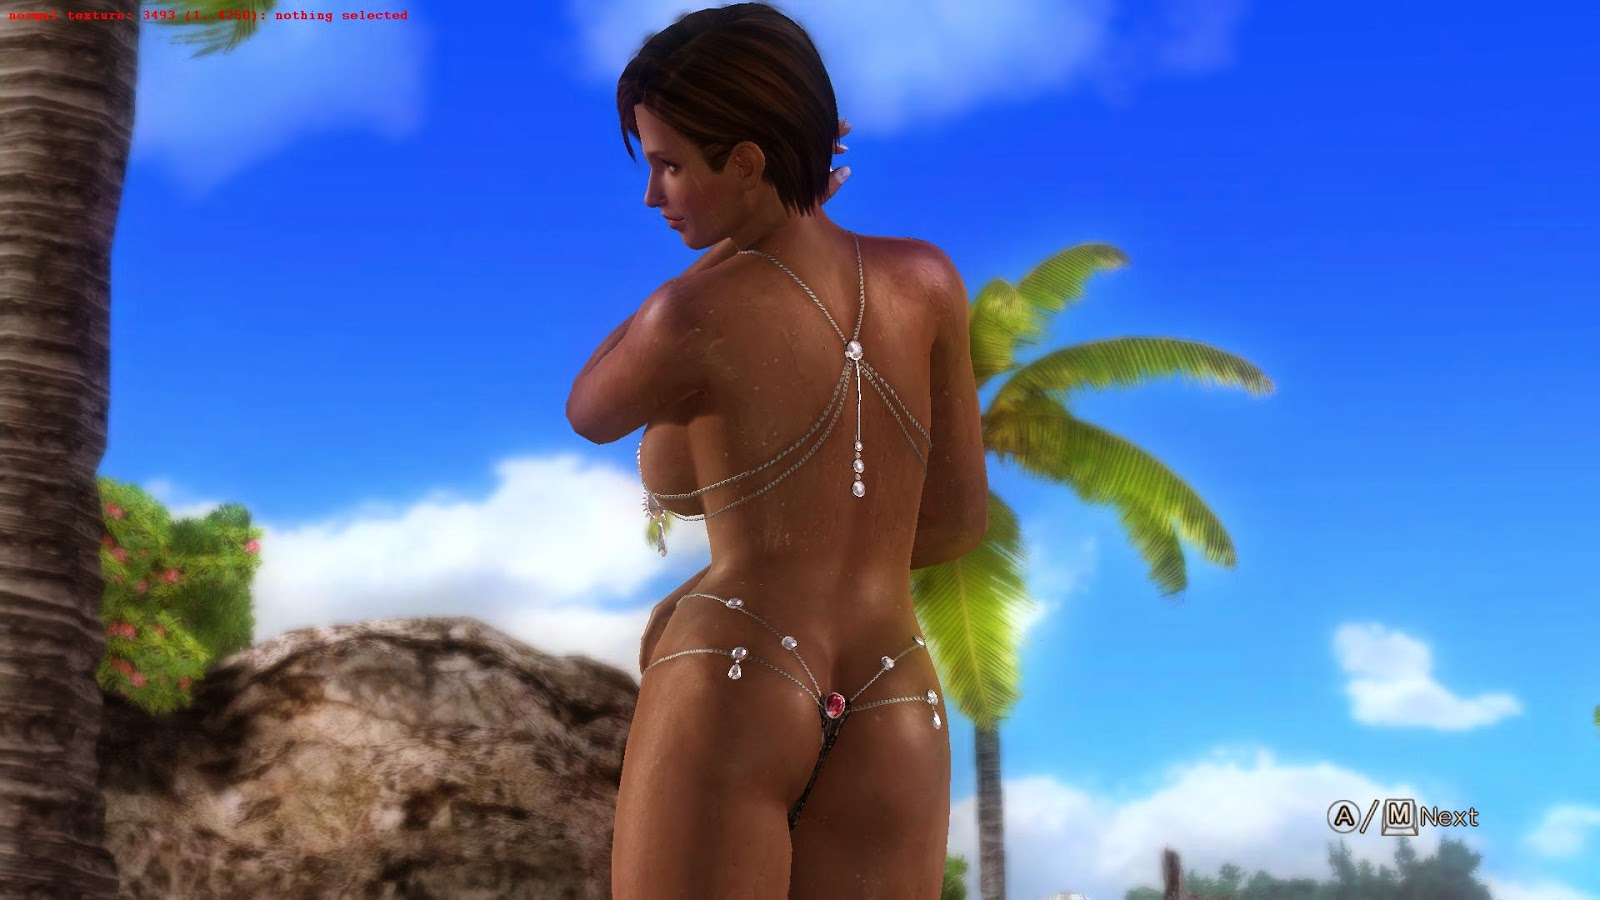 game characters nude mod video Female